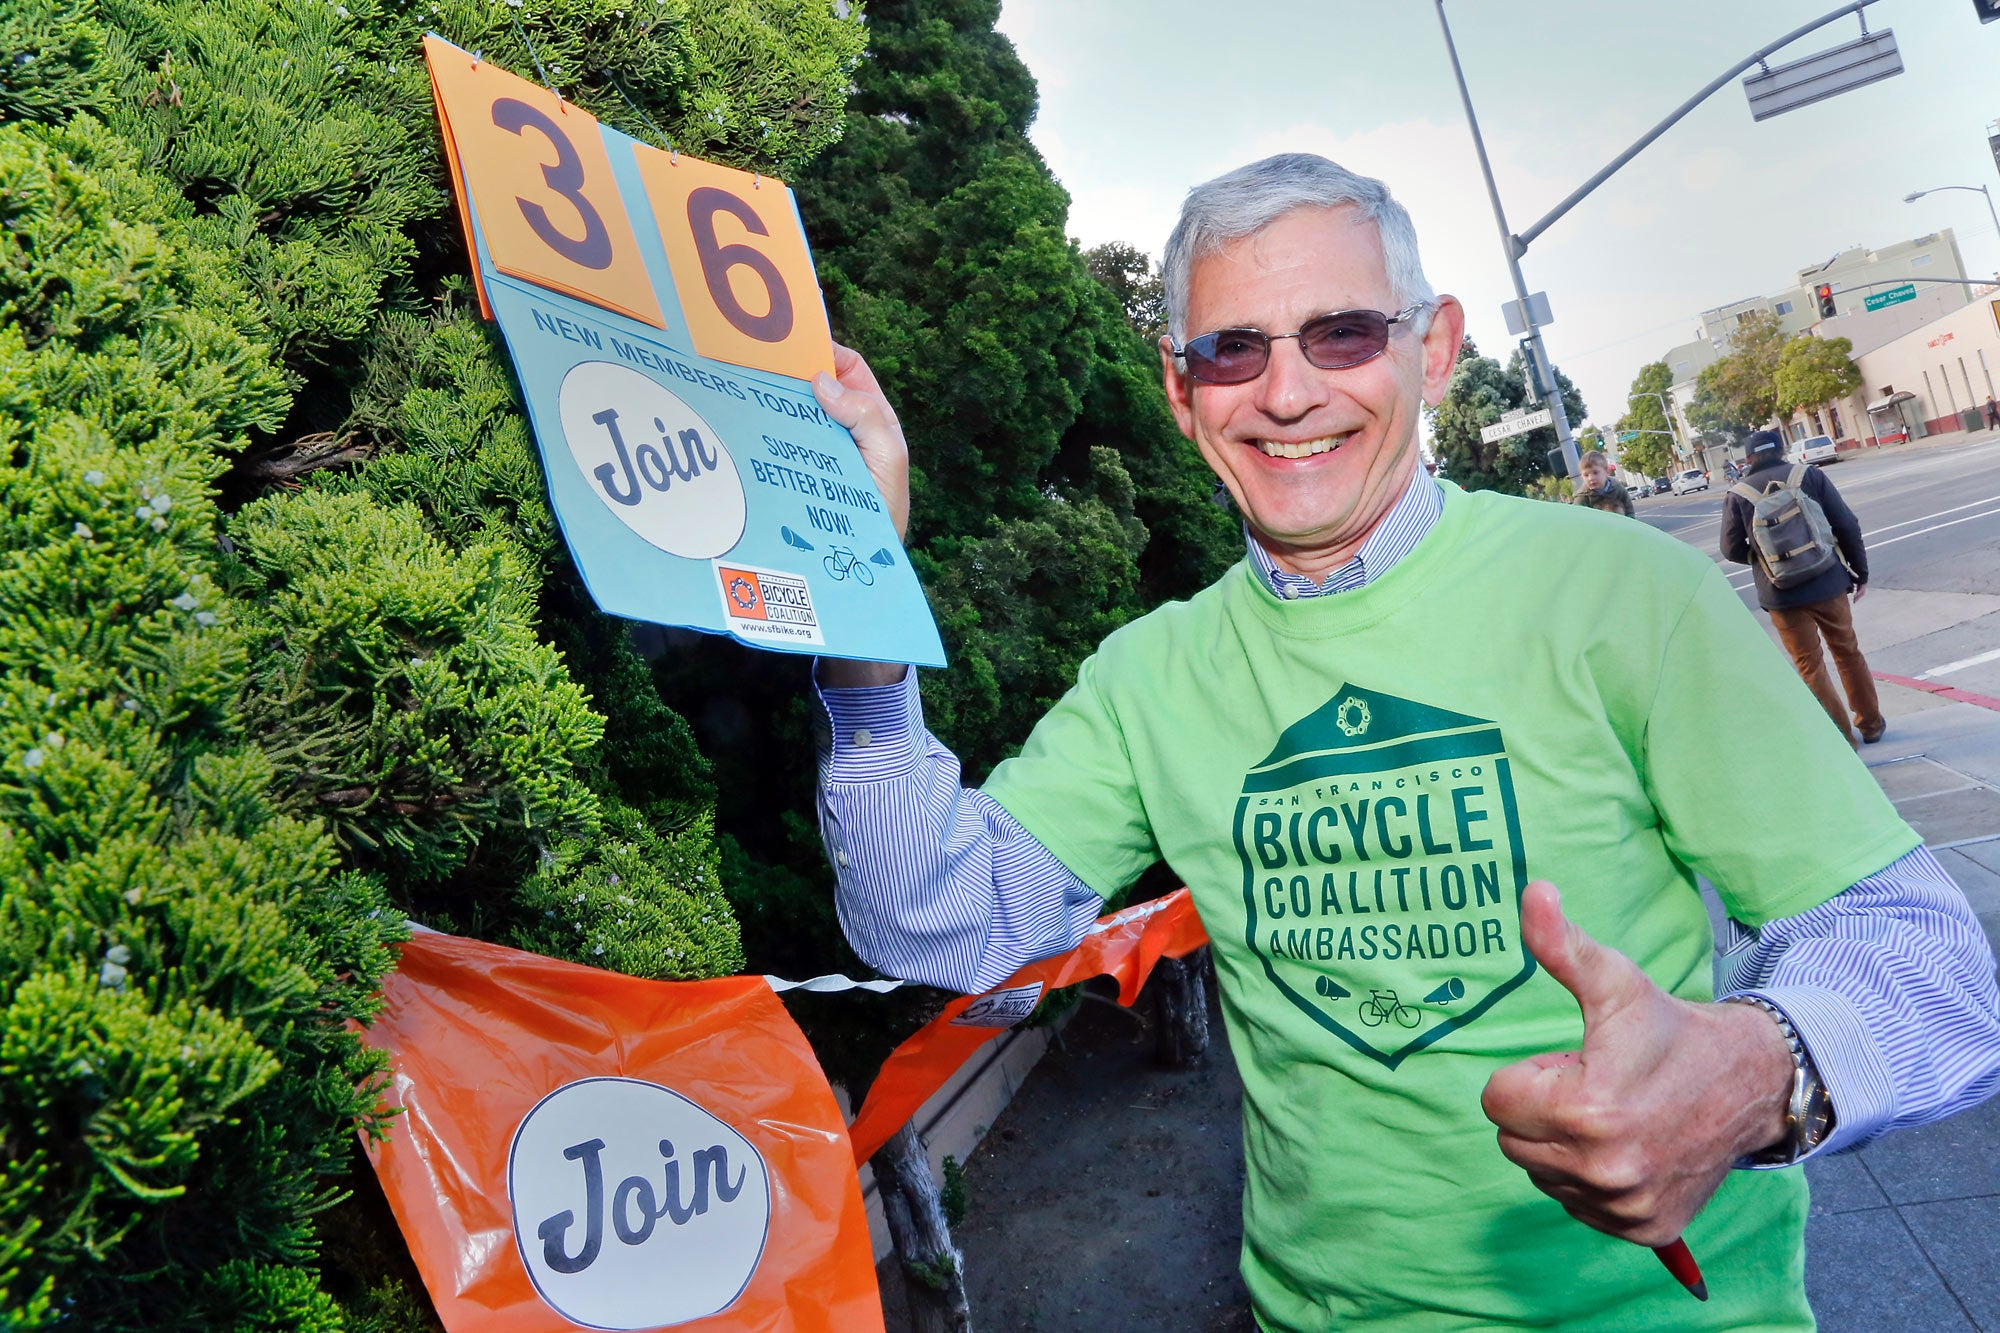 The SF Bicycle Coalition signed up dozens of new members during Bike to Work Day.